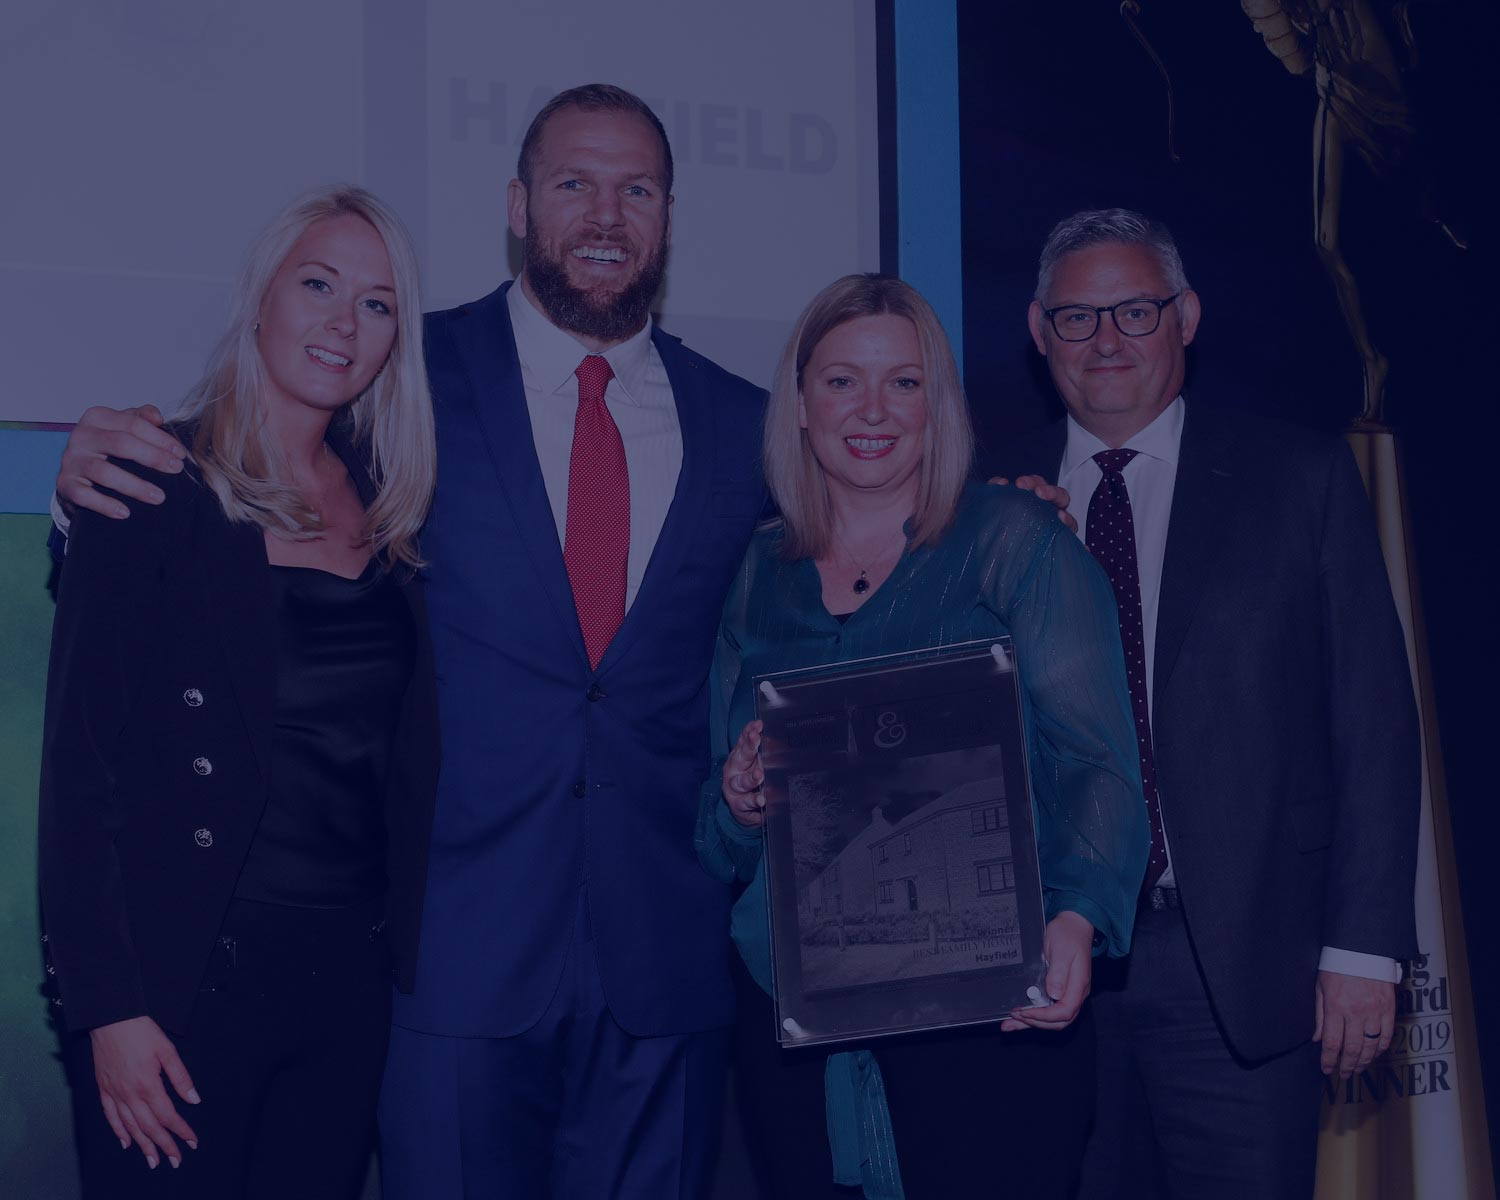 Maddie+Robinson,+Kelly+Sharman+and+Mark+Booth+from+Hayfield+receive+the+Evening+Standard+award+for+Best+Family+Home+from+James+Haskell+blue.jpg